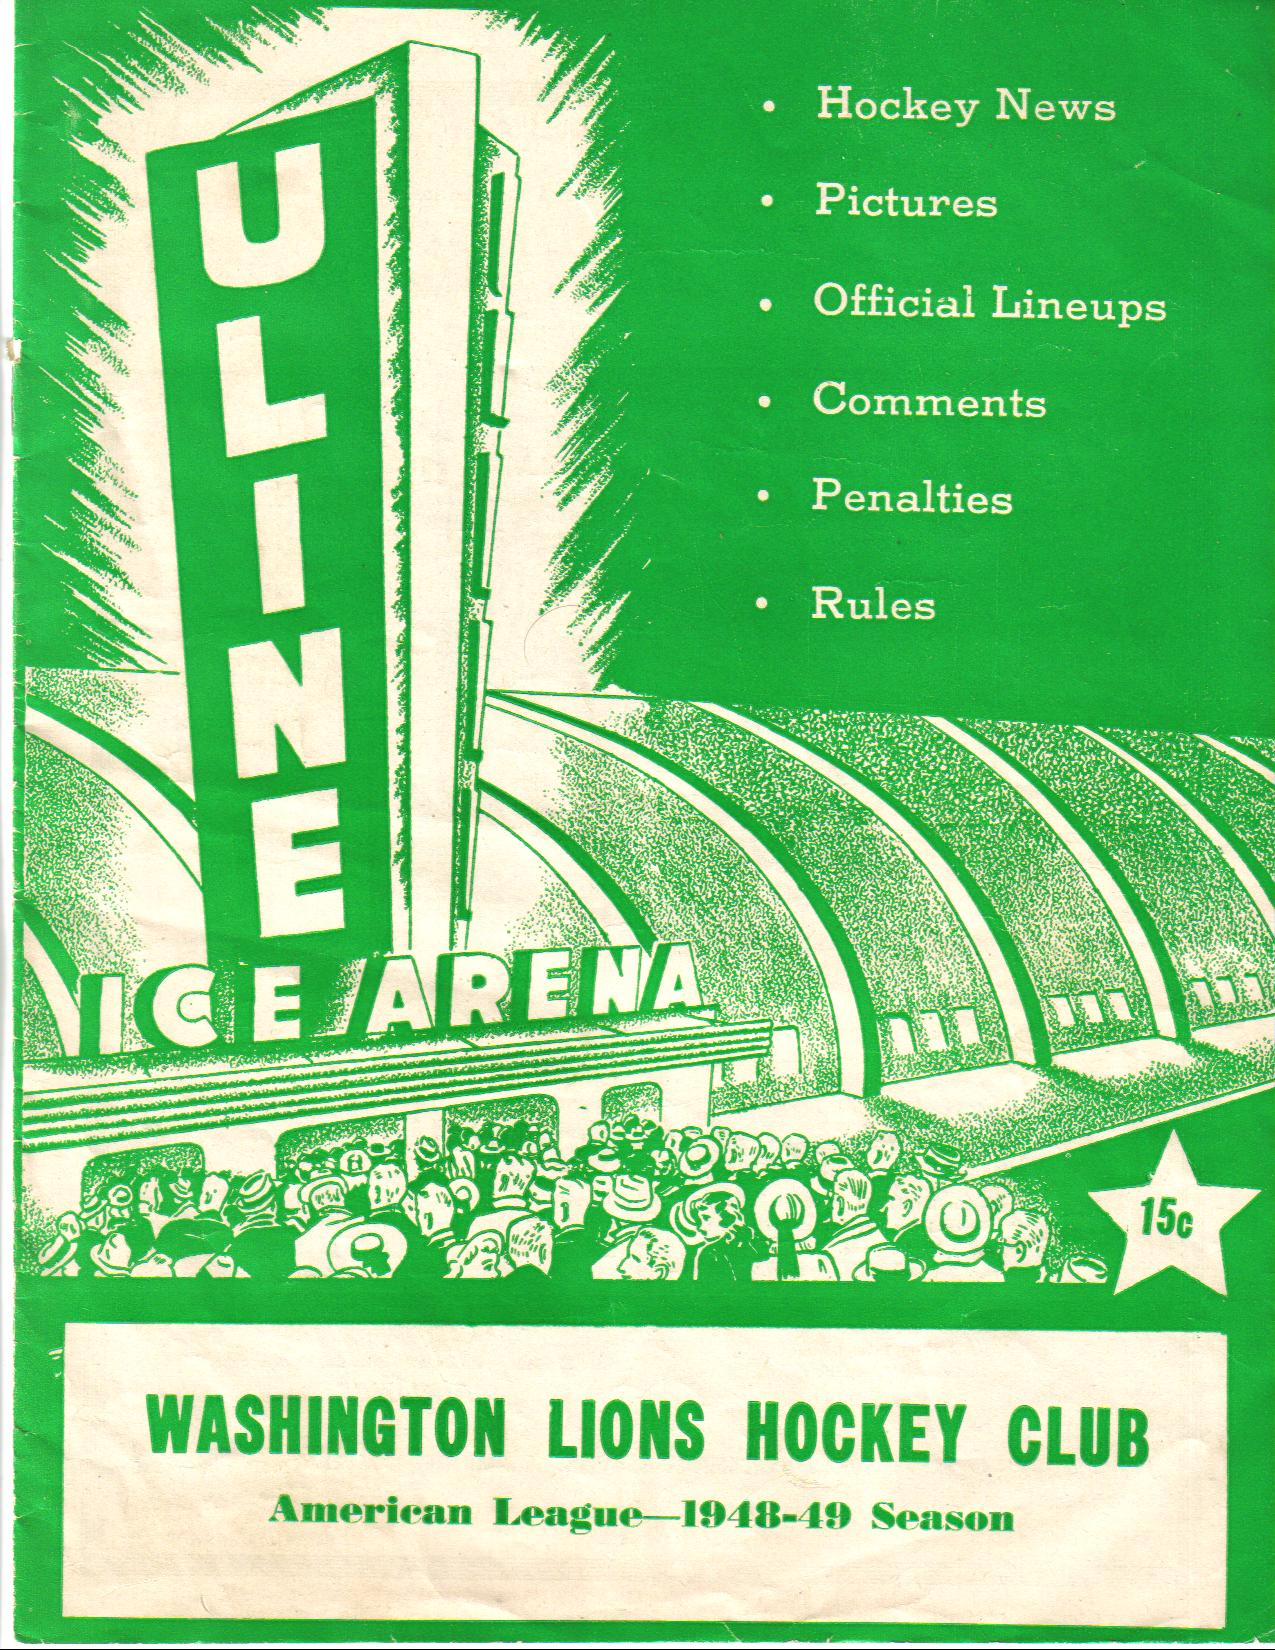 Before Ovechkin: The Washington Lions and Uline Arena